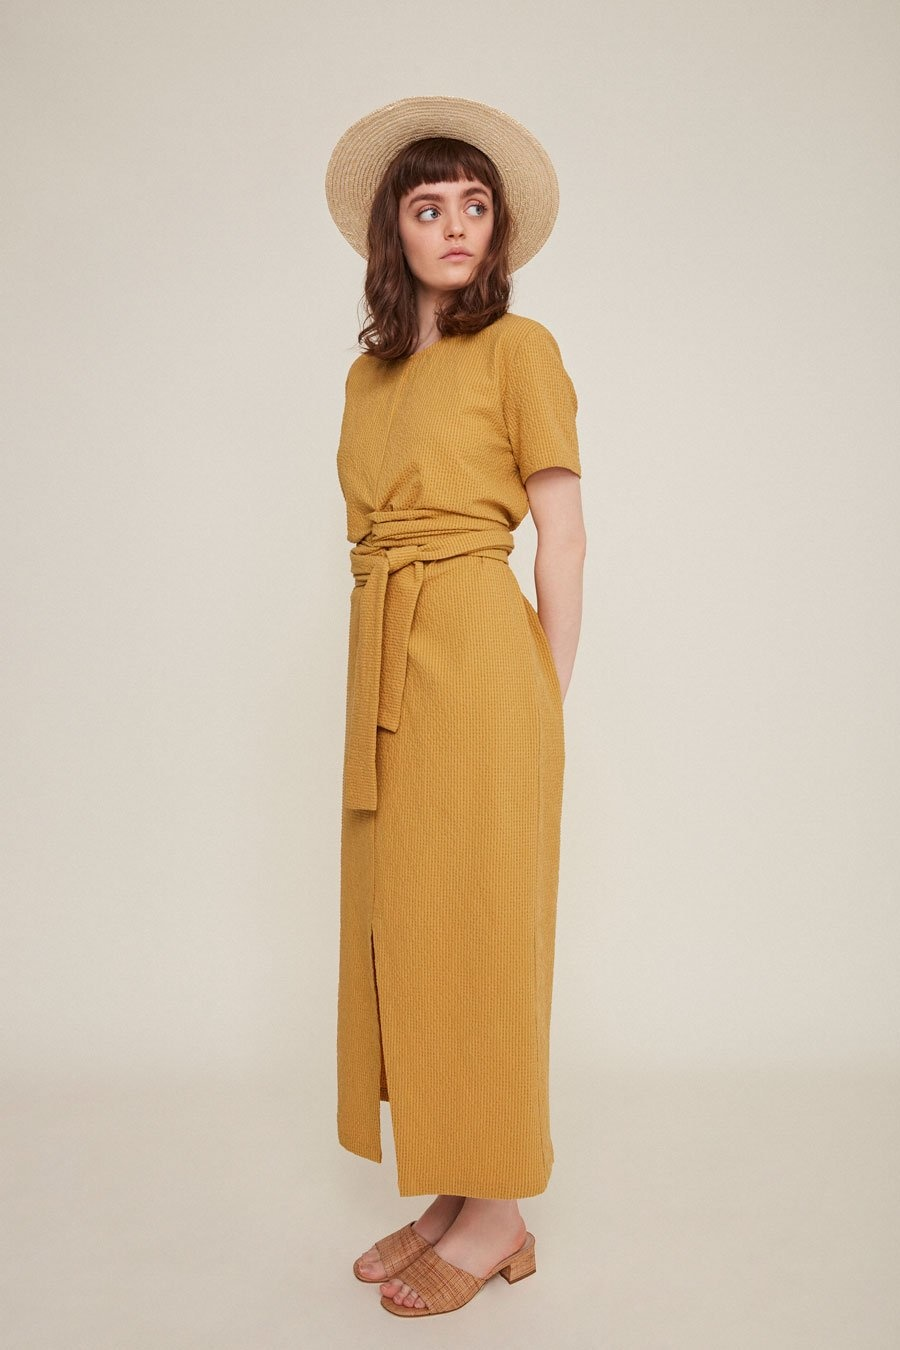 Rita Row Jianna Dress in Mustard